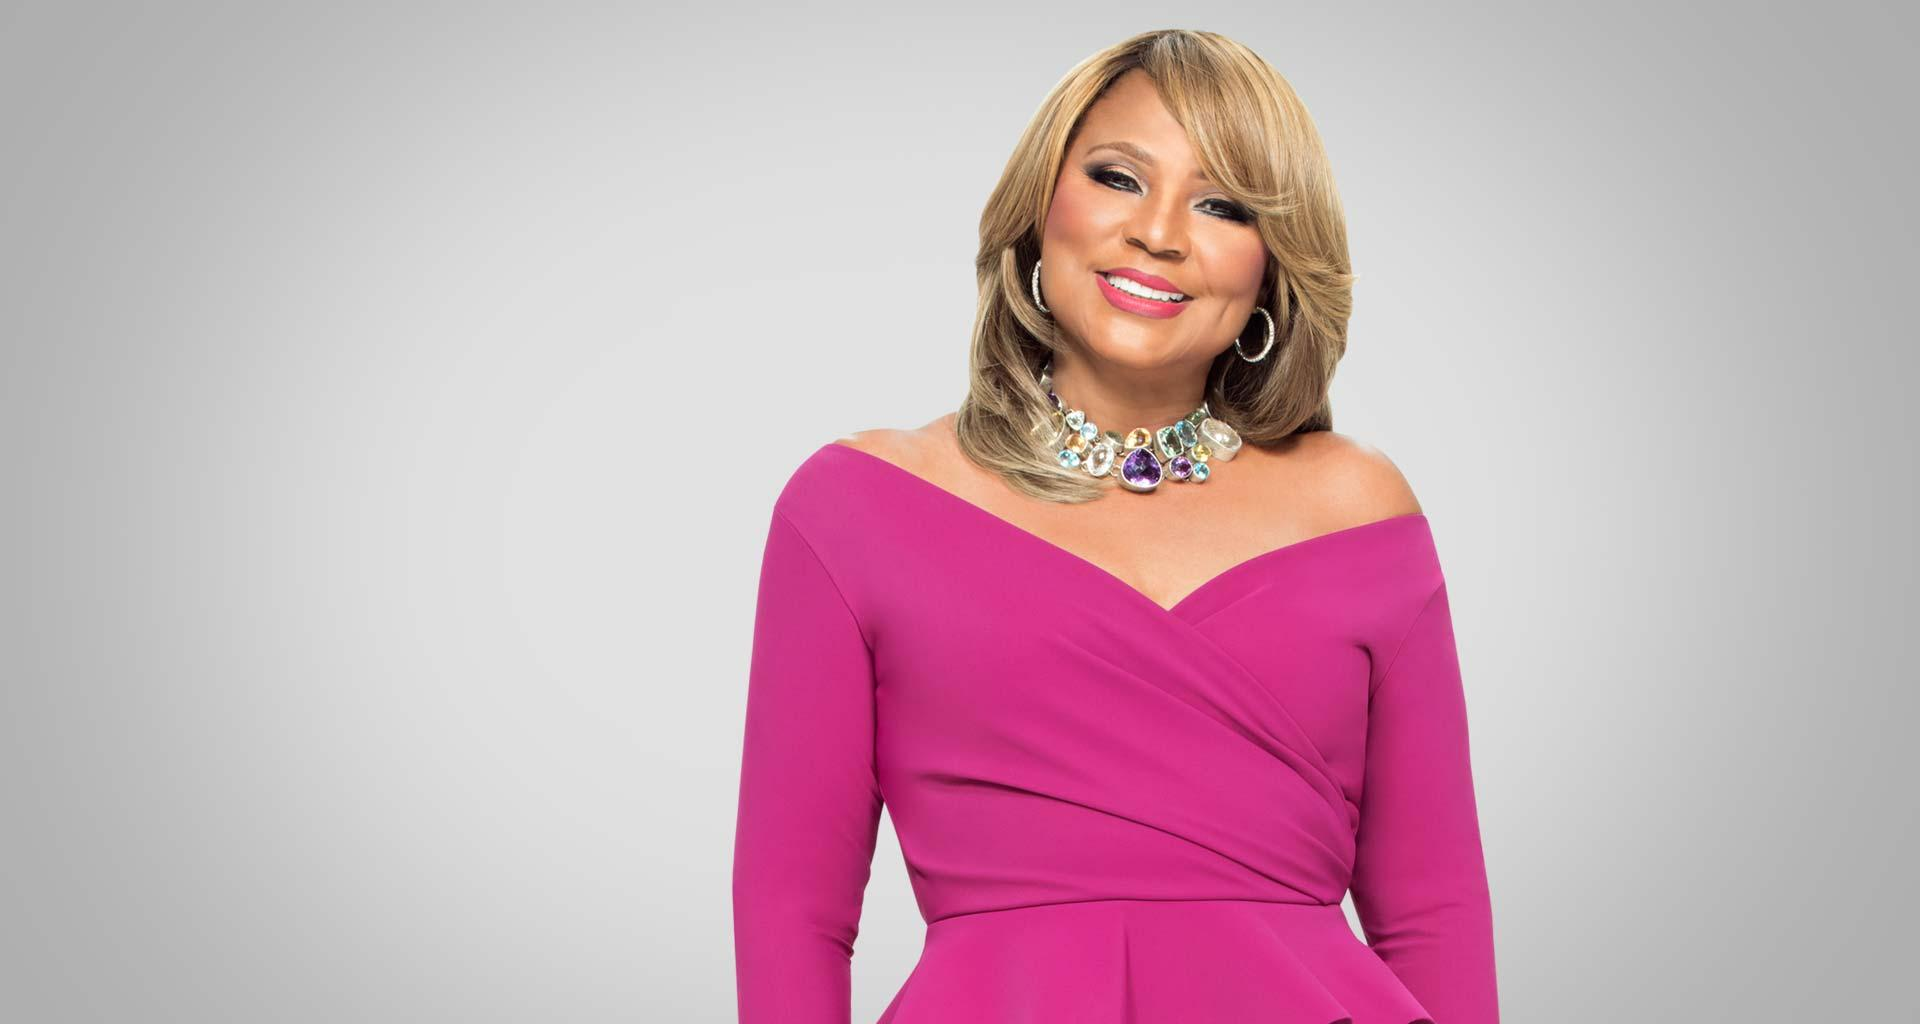 Traci Braxton's Video Featuring Her Mom, Evelyn Braxton Will Make Your Day